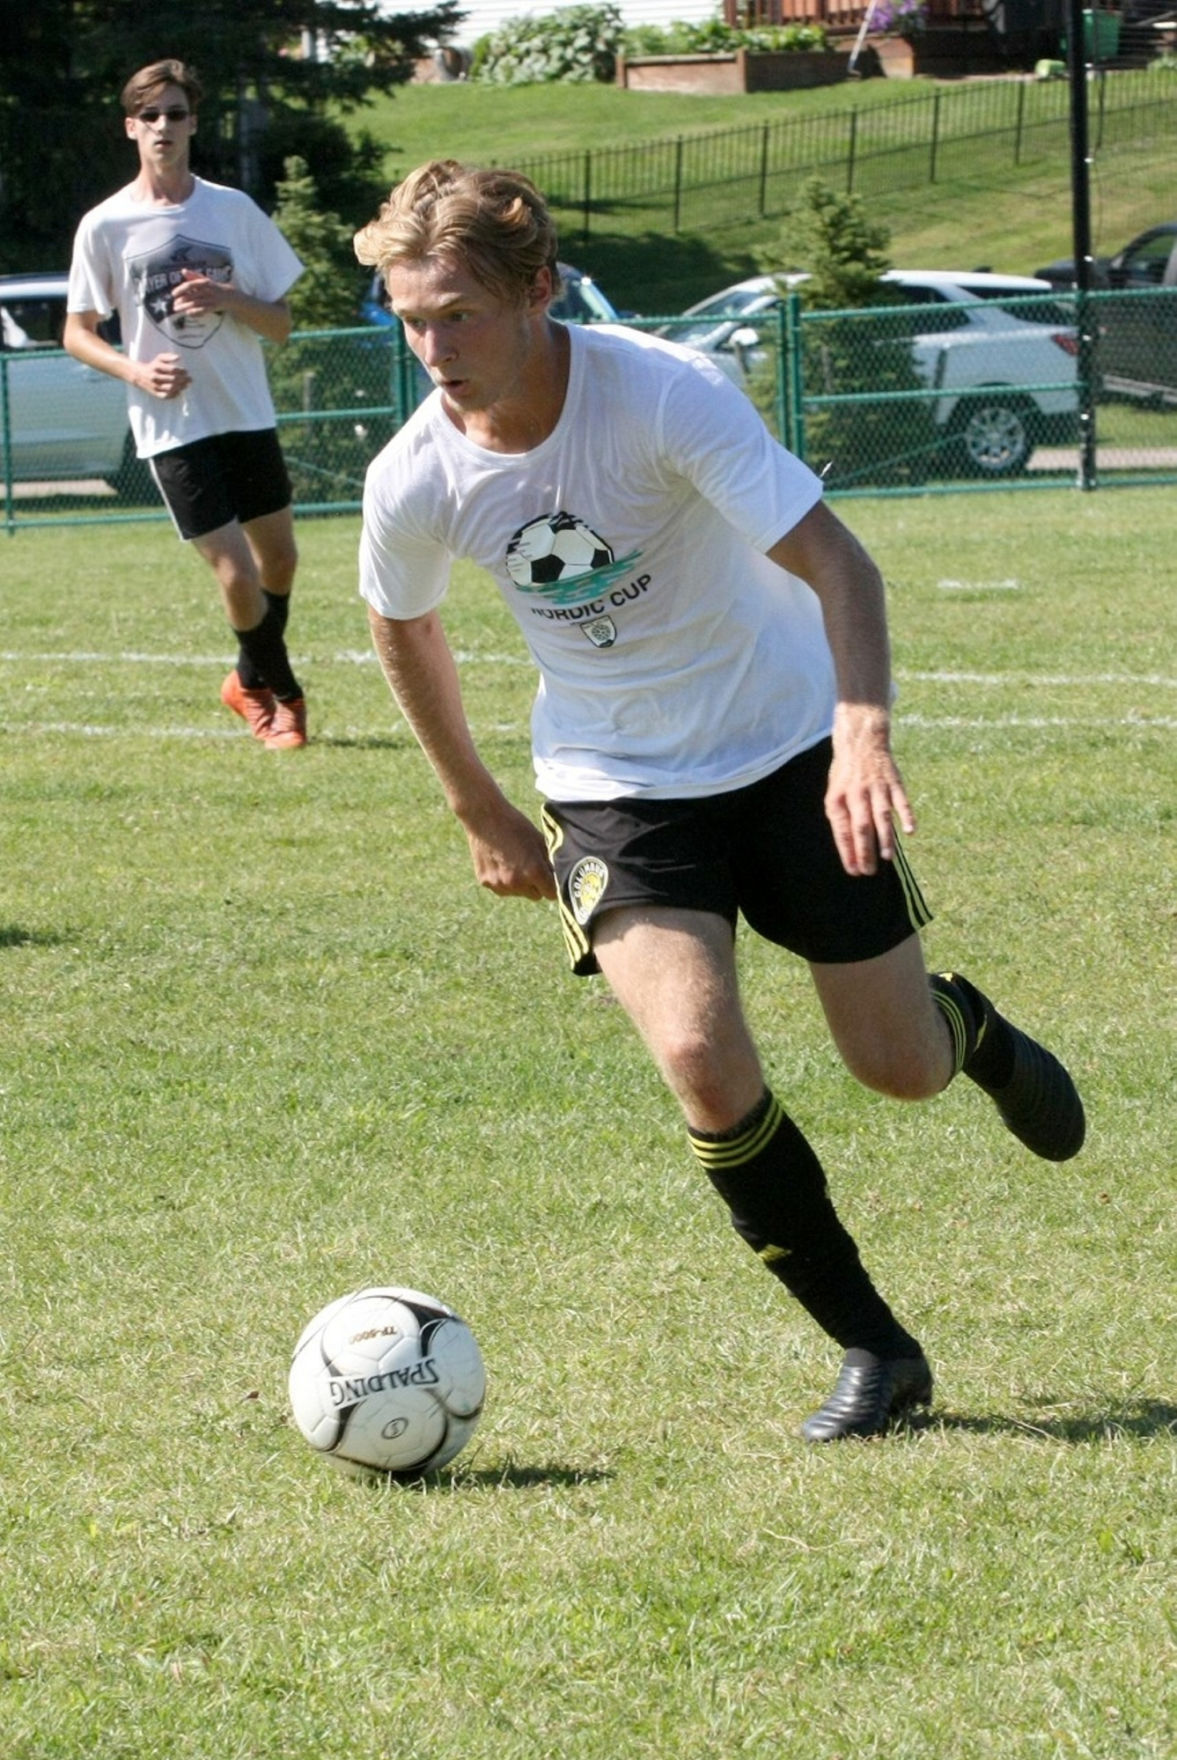 High school boys soccer: Malone's Schumacher too talented to